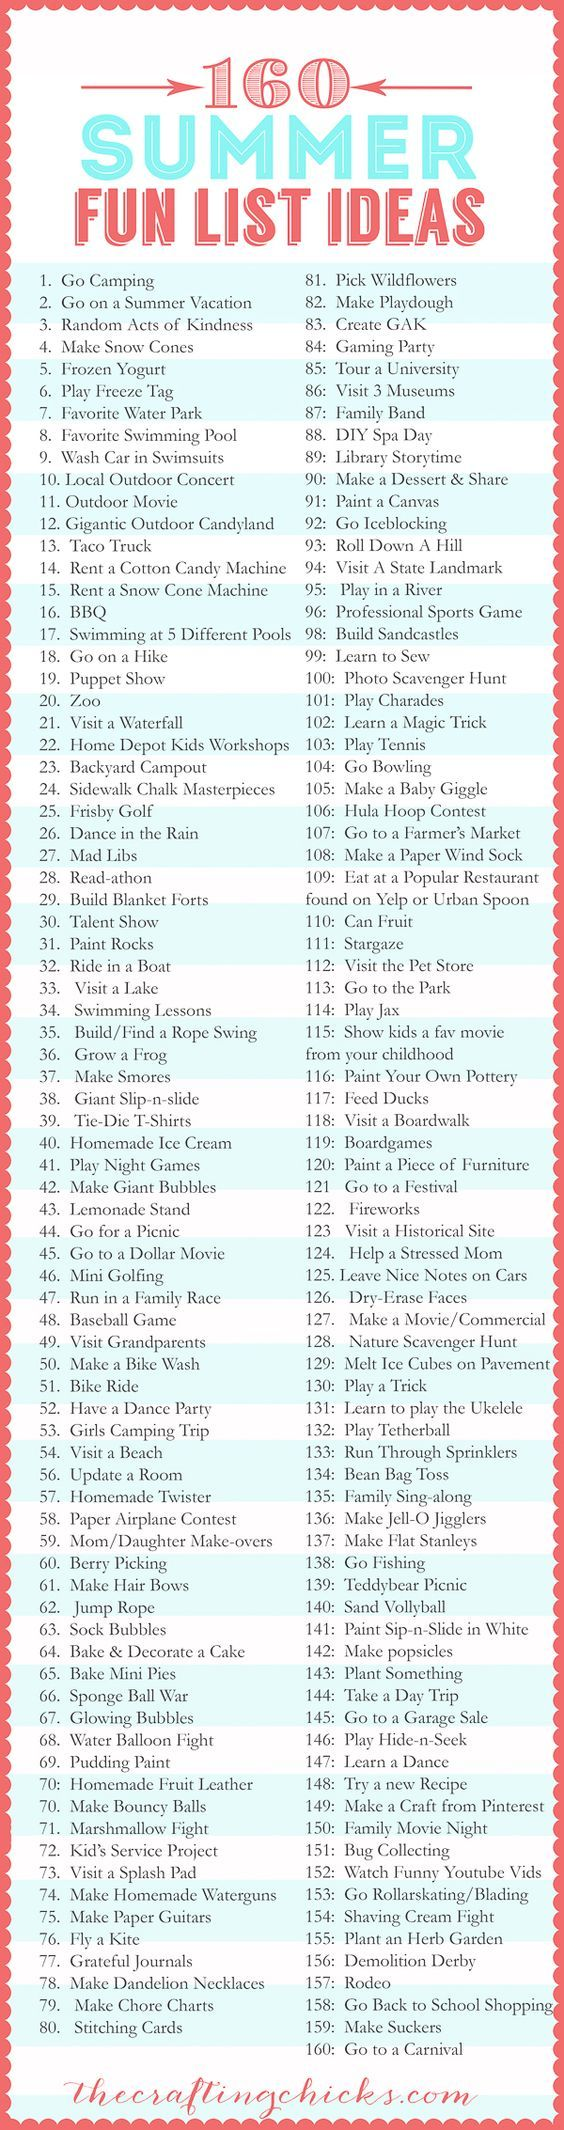 No one wants to spend their summers indoors, doing the same old things. We are going to use this list of 160 Summer Fun List Ideas to kick start our adventures this season.